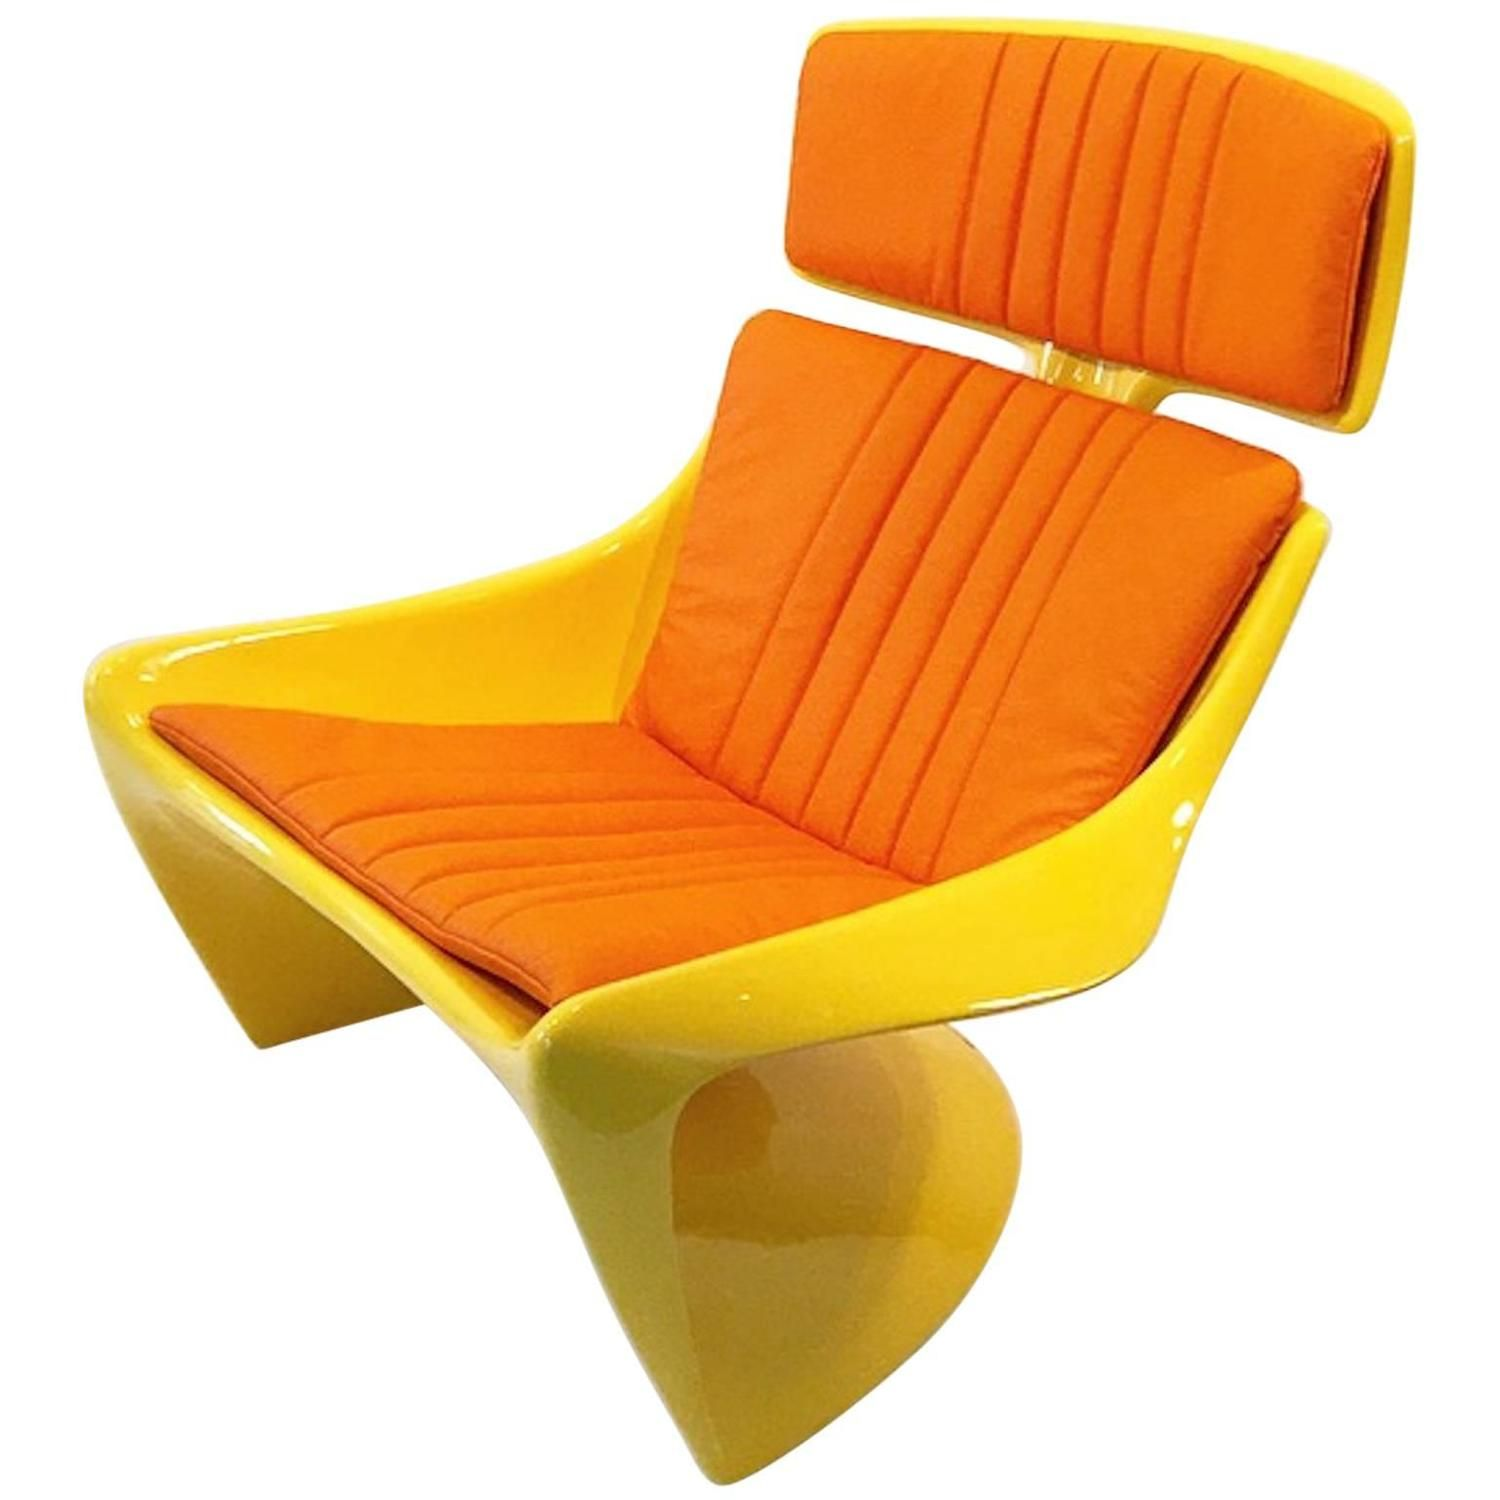 Steen Ostergaard President Prototype Lounge Chair for Abstracta ca.1967